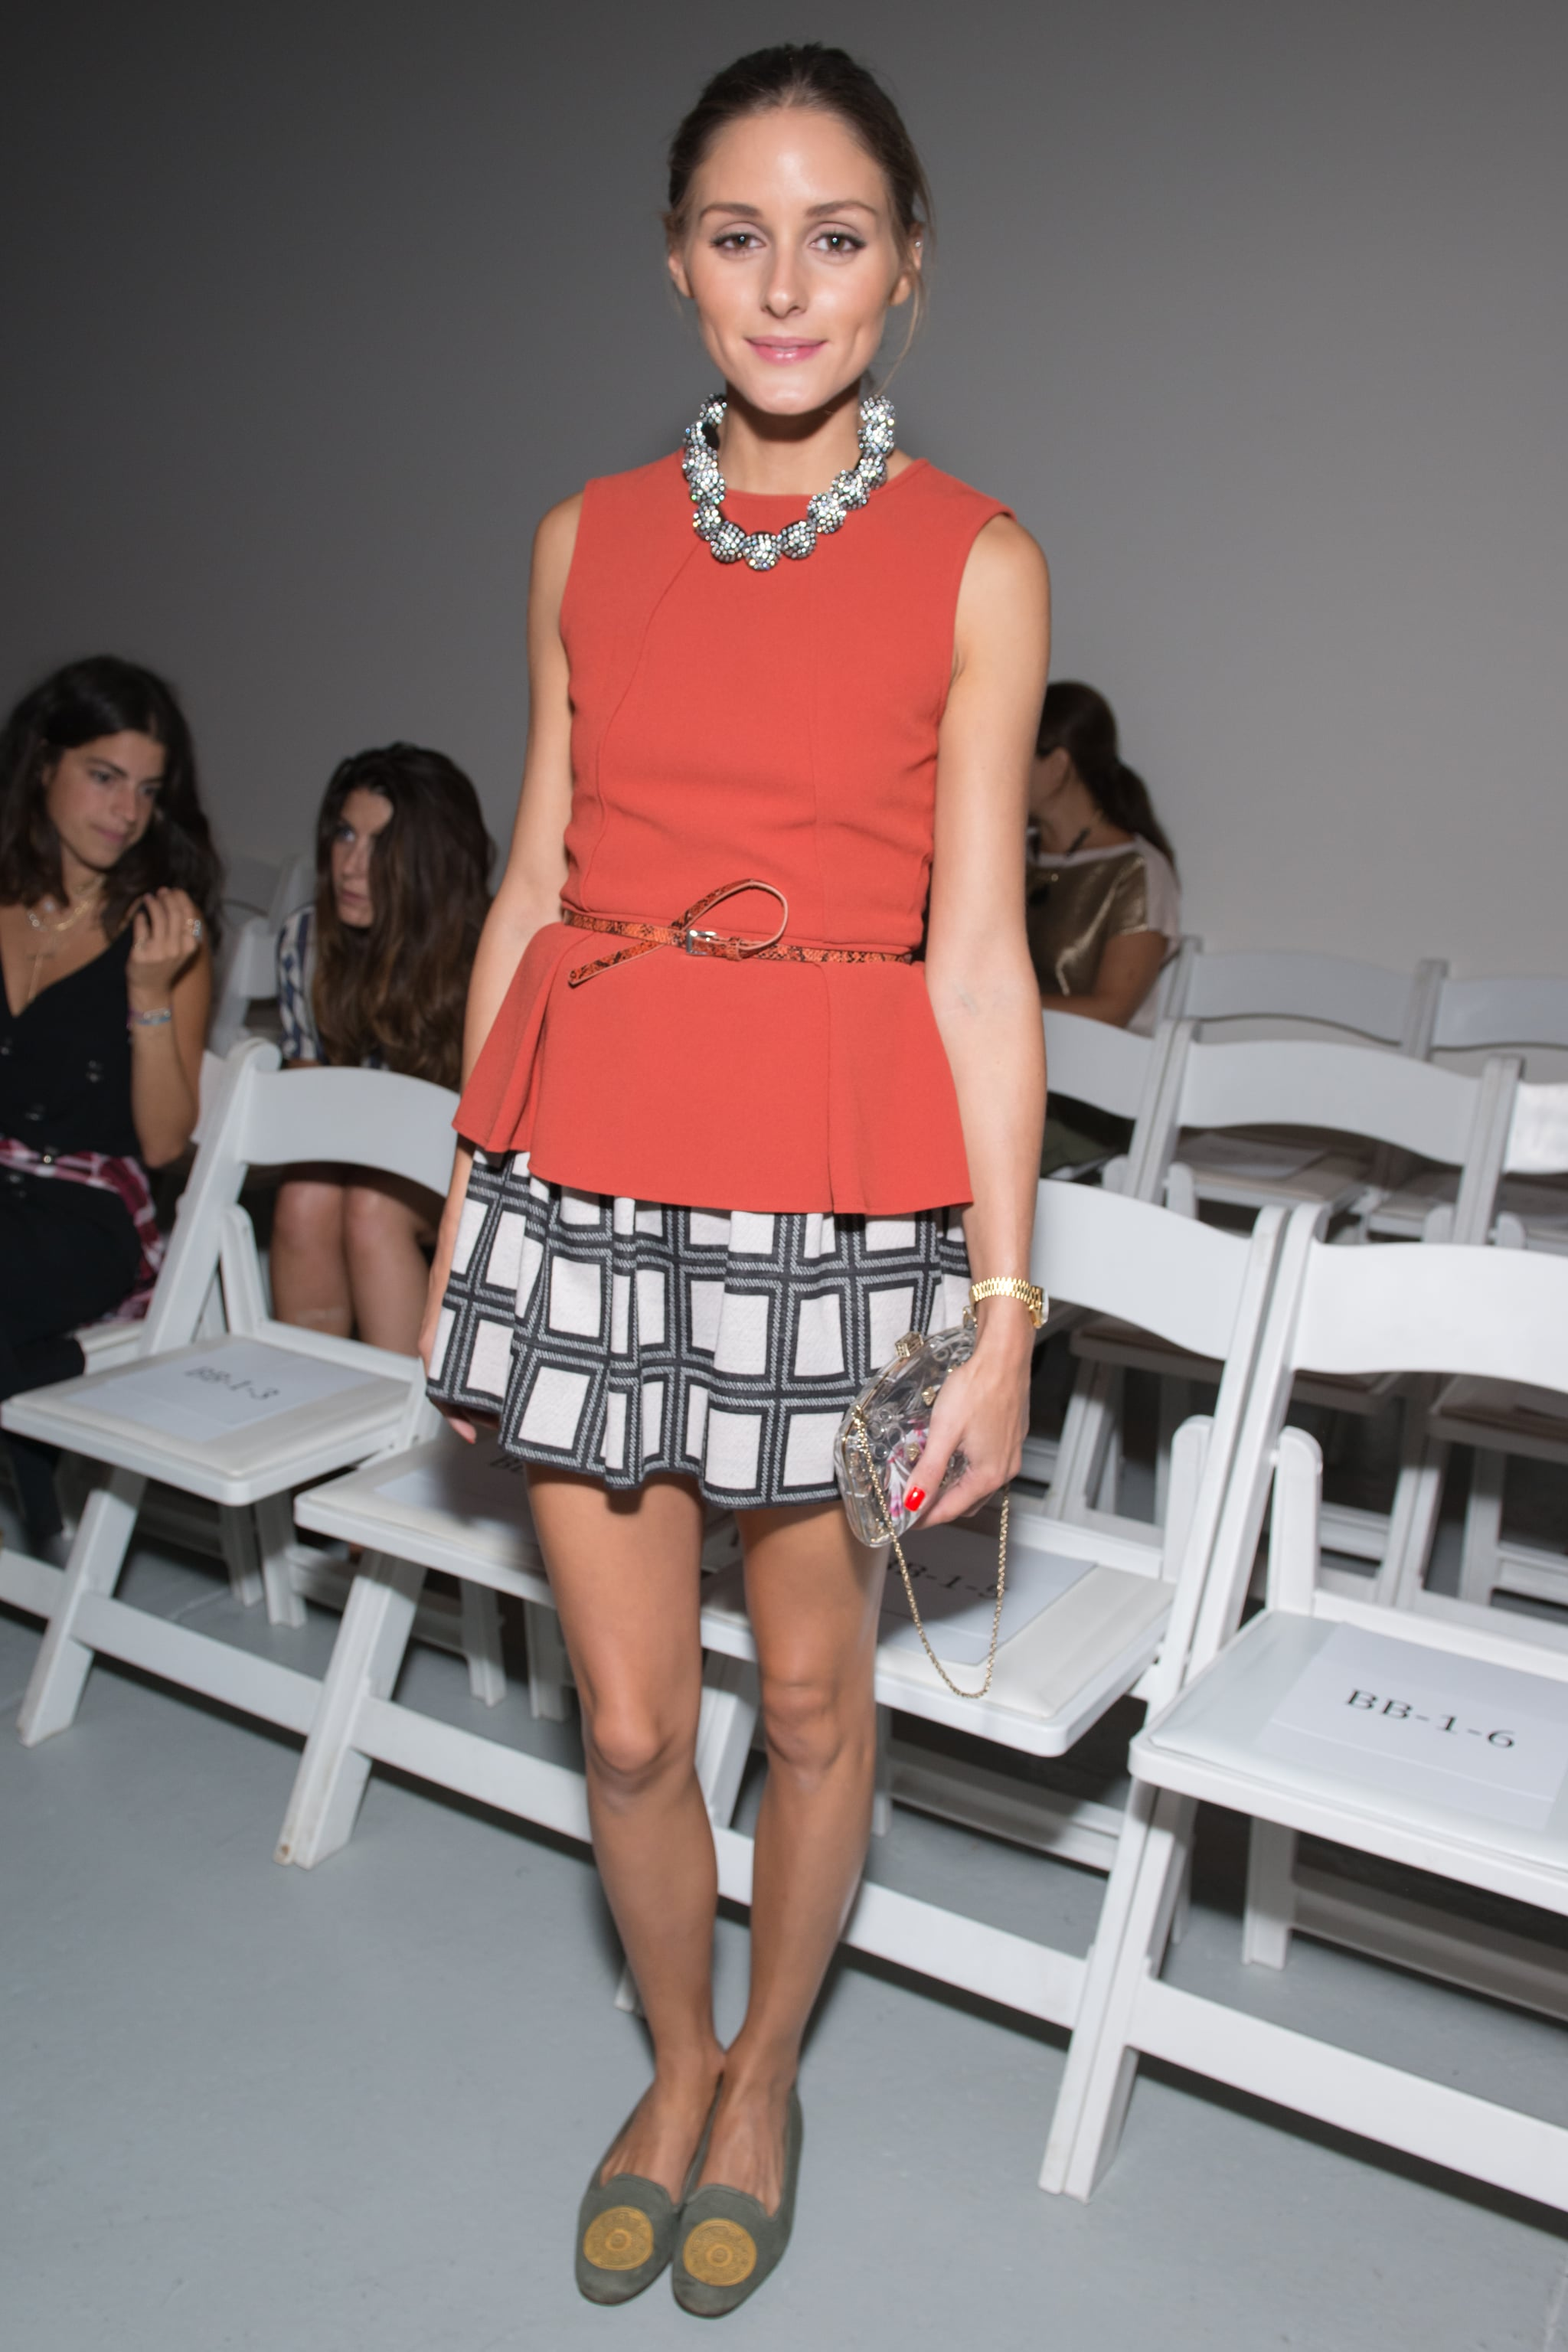 Olivia Palermo played up her red peplum top with a wide checkered skirt and embellished flat loafers at Tibi's Spring 2013 show in NYC.